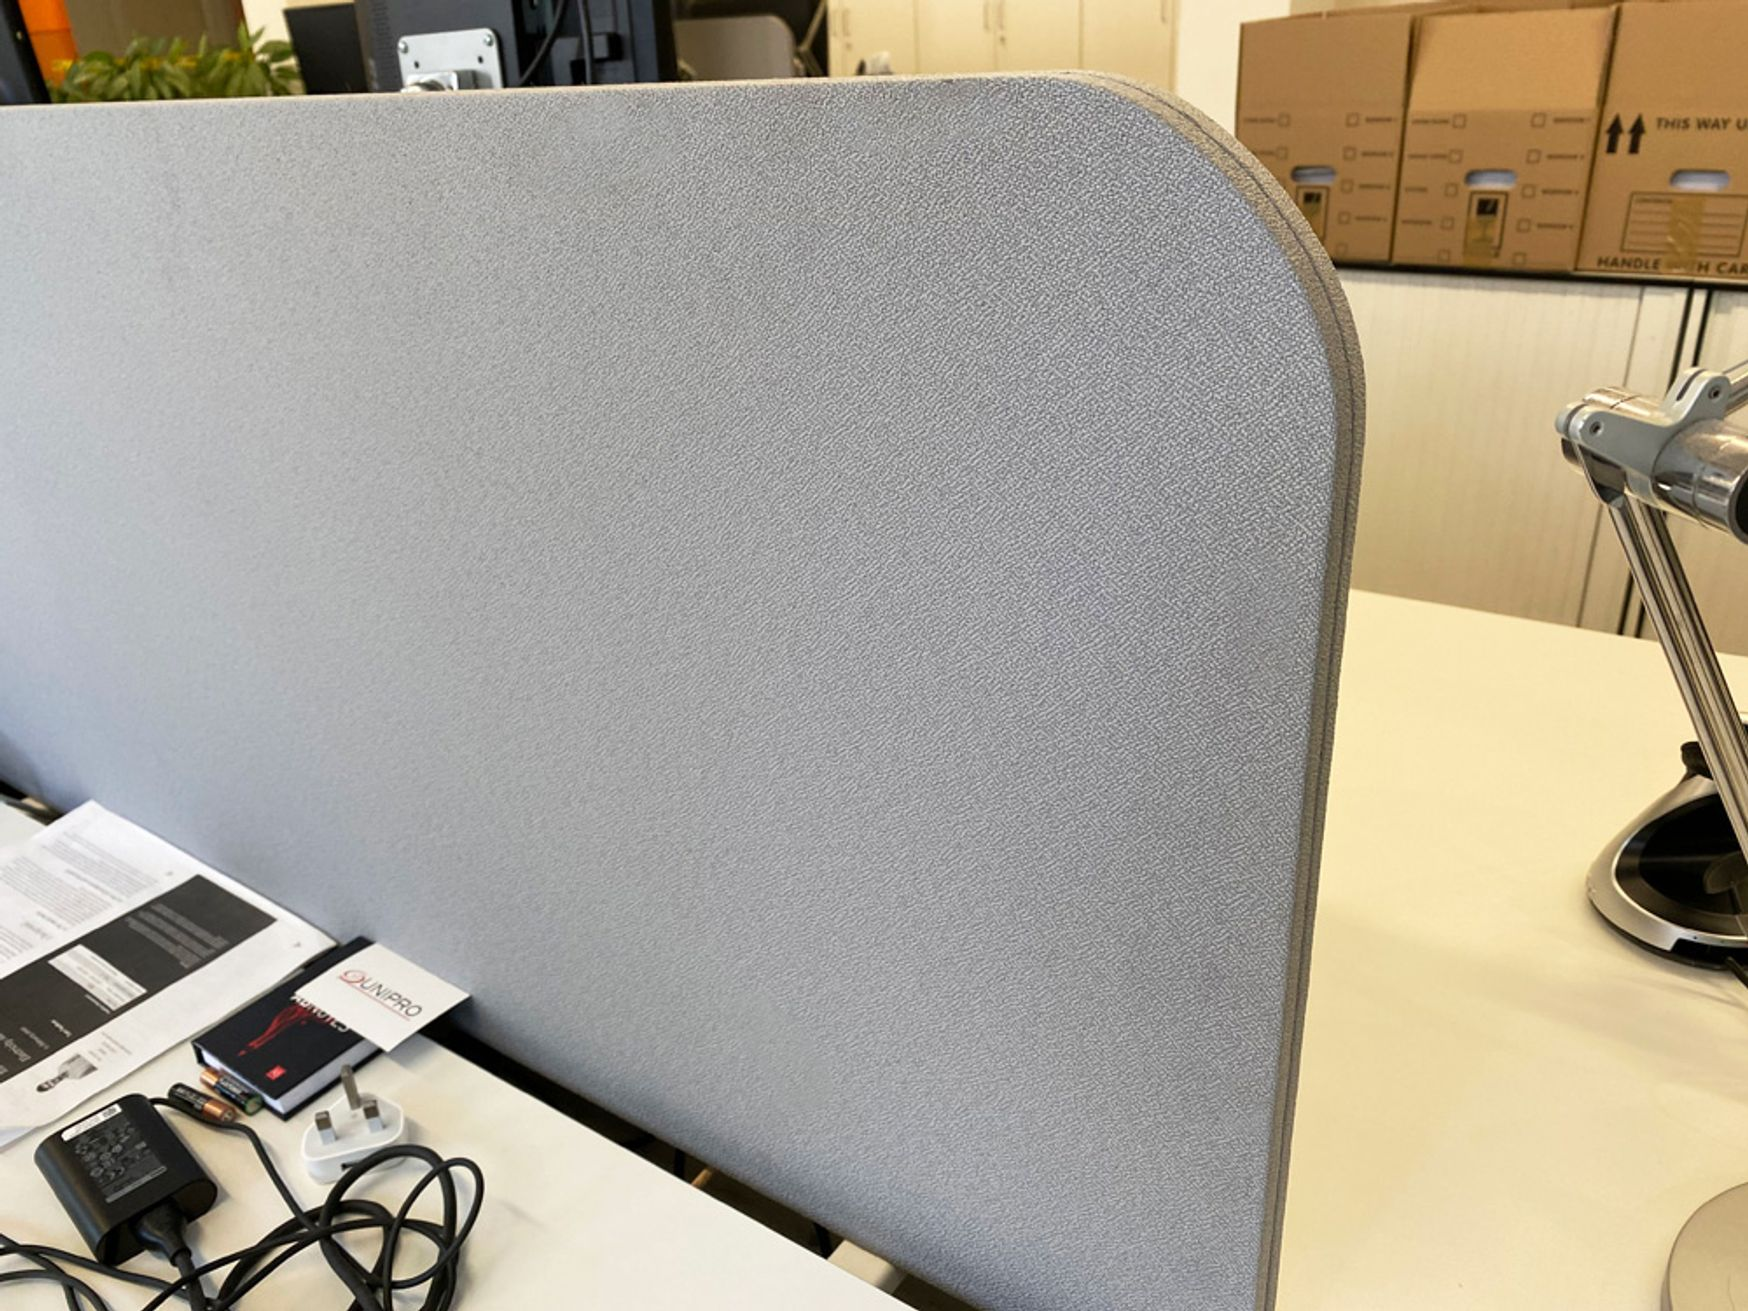 Desk dividing screens upholstered in grey fabric.